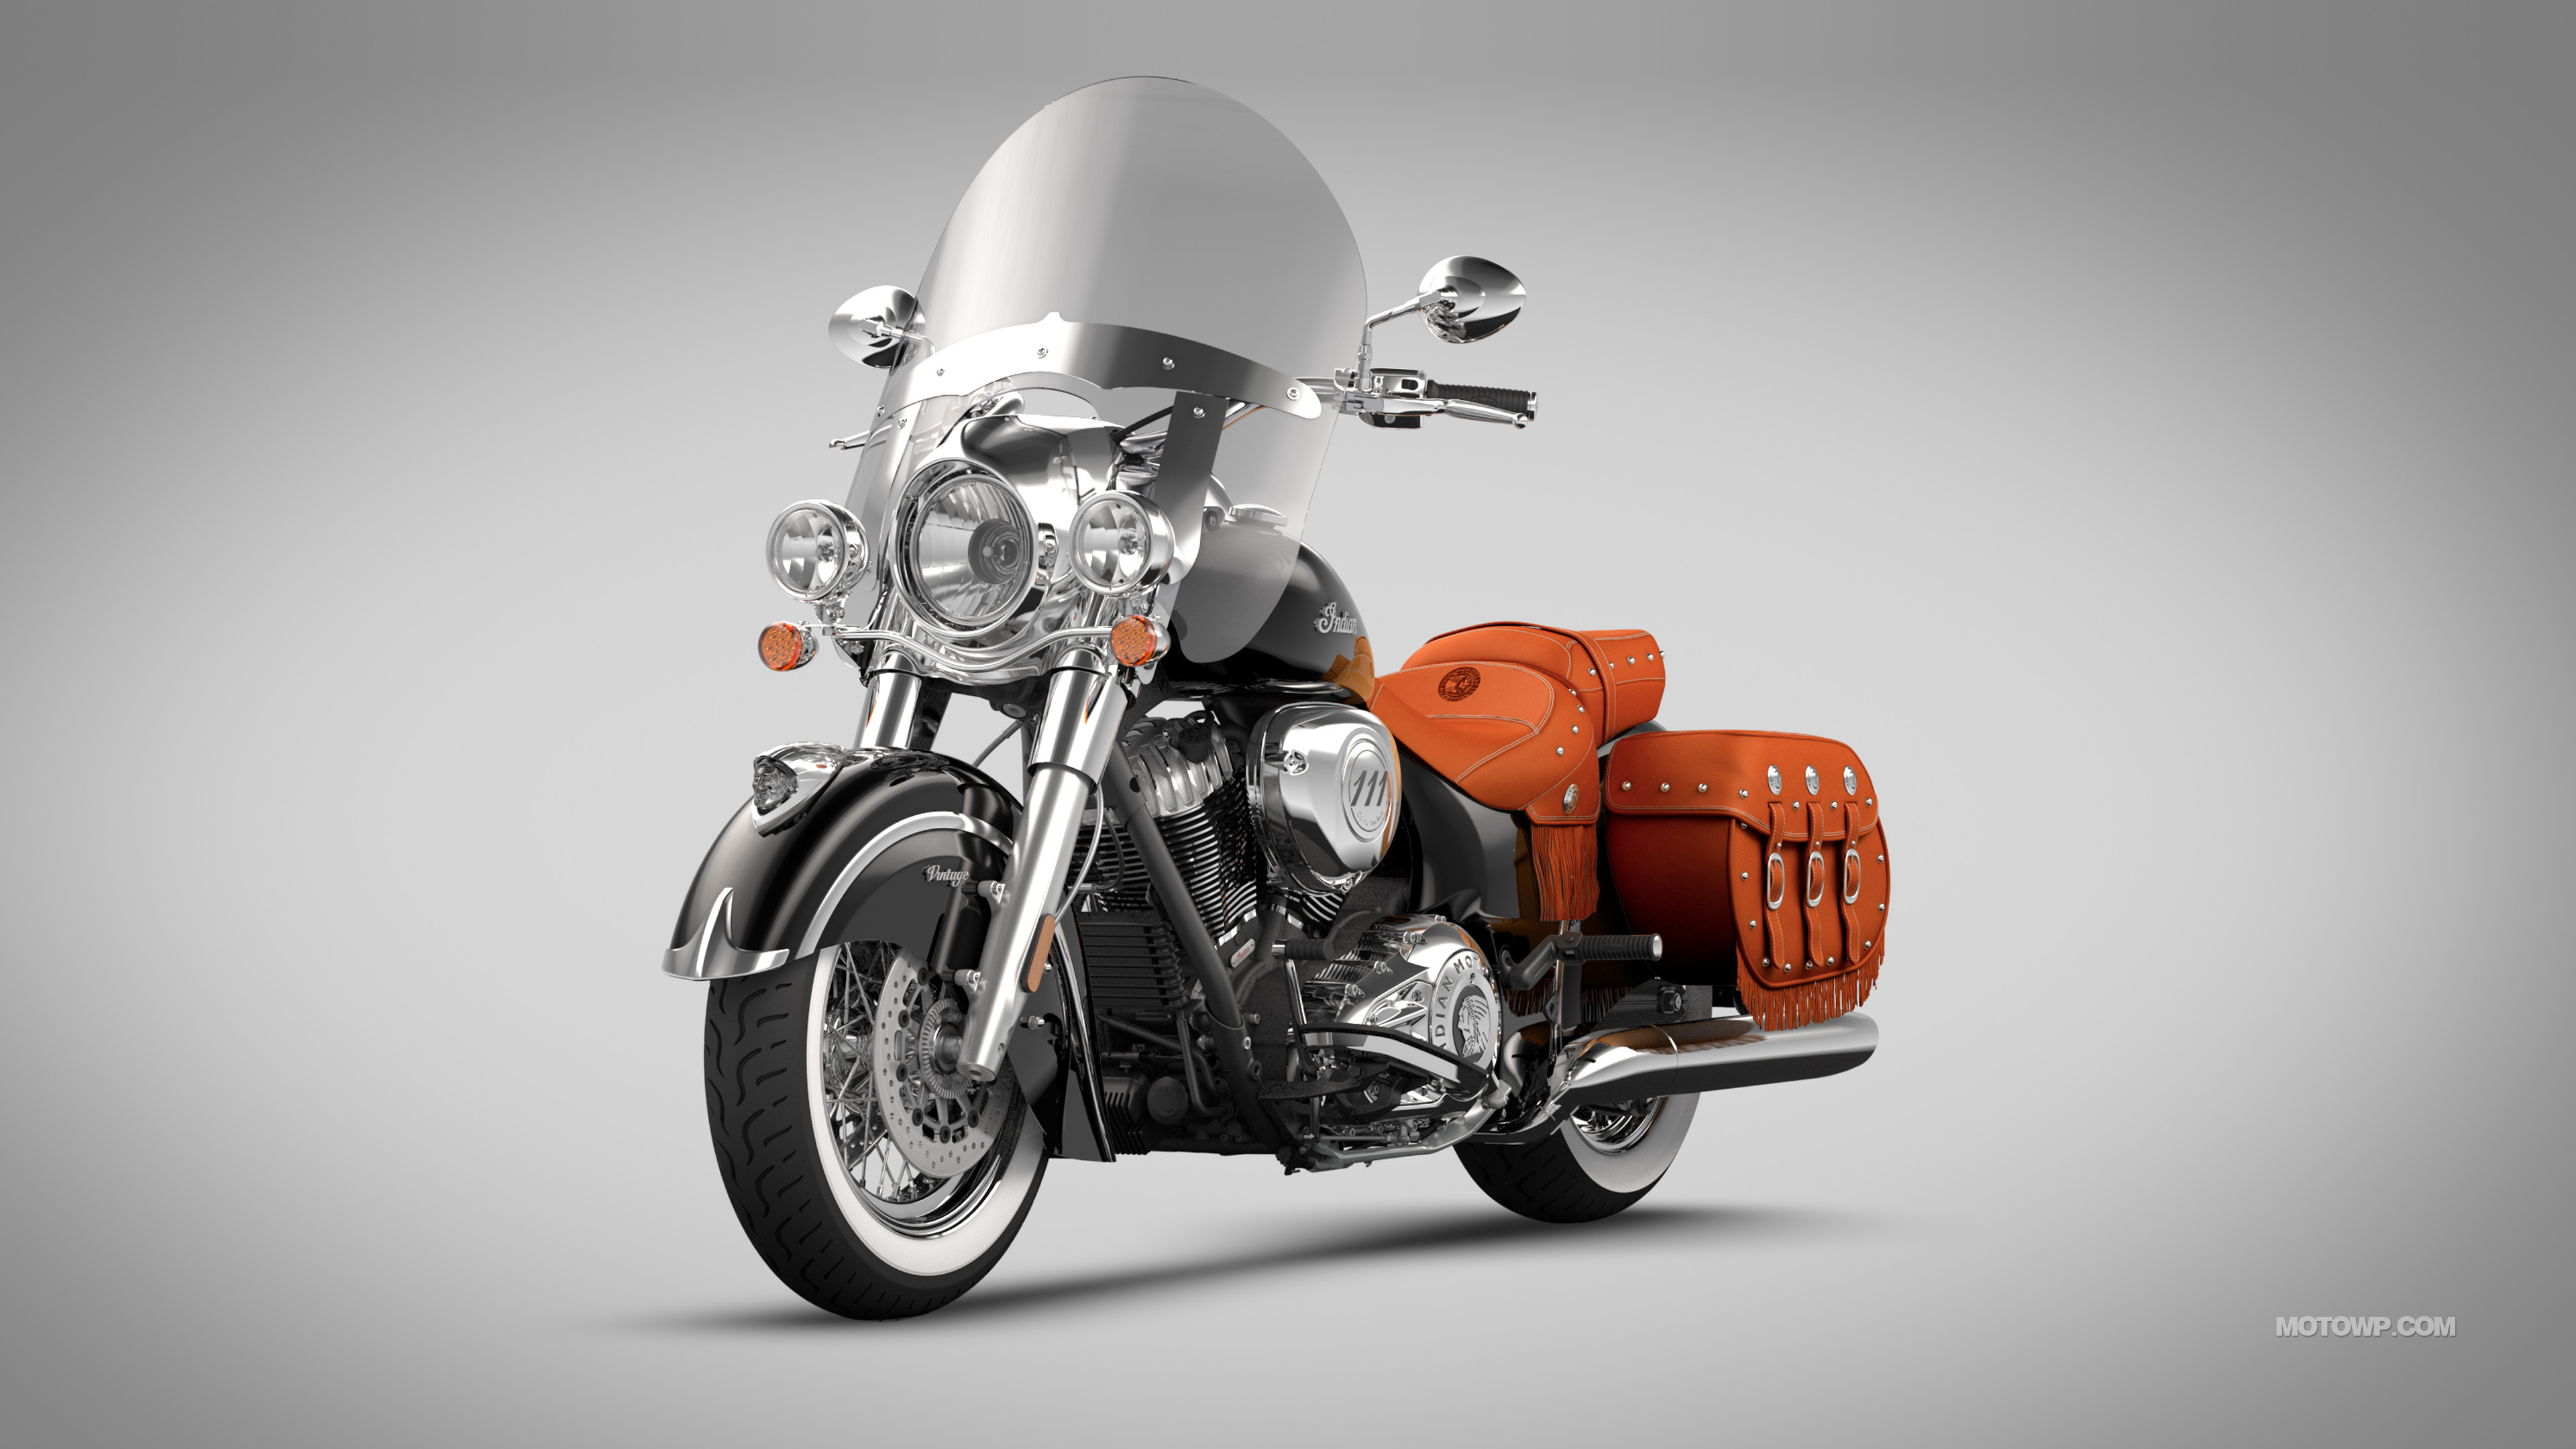 Res: 3840x2160, Motorcycle wallpapers Indian Chief Vintage ...